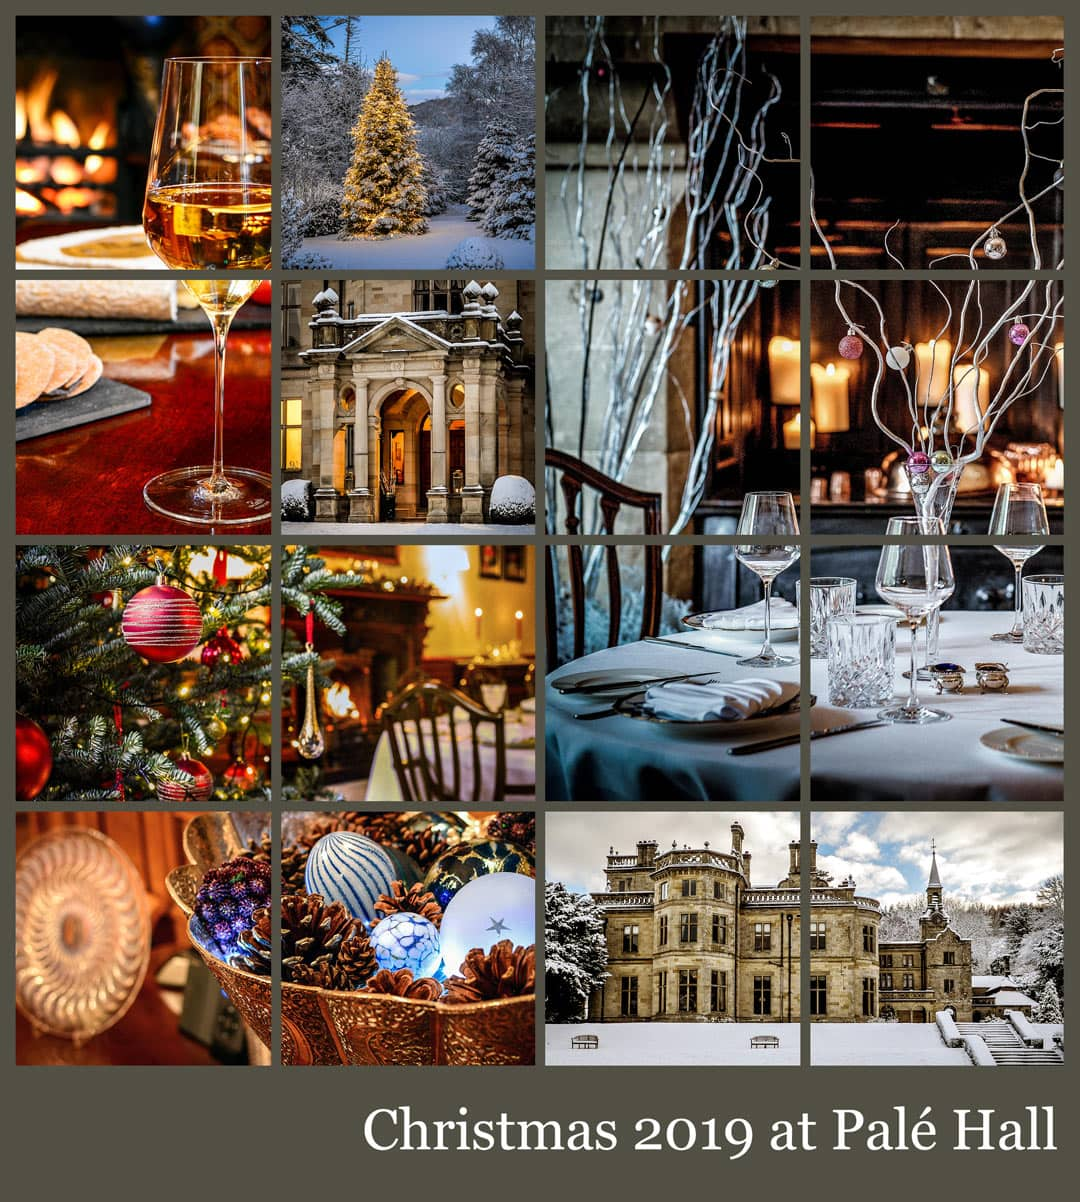 Christmas 2019 at Palé Hall